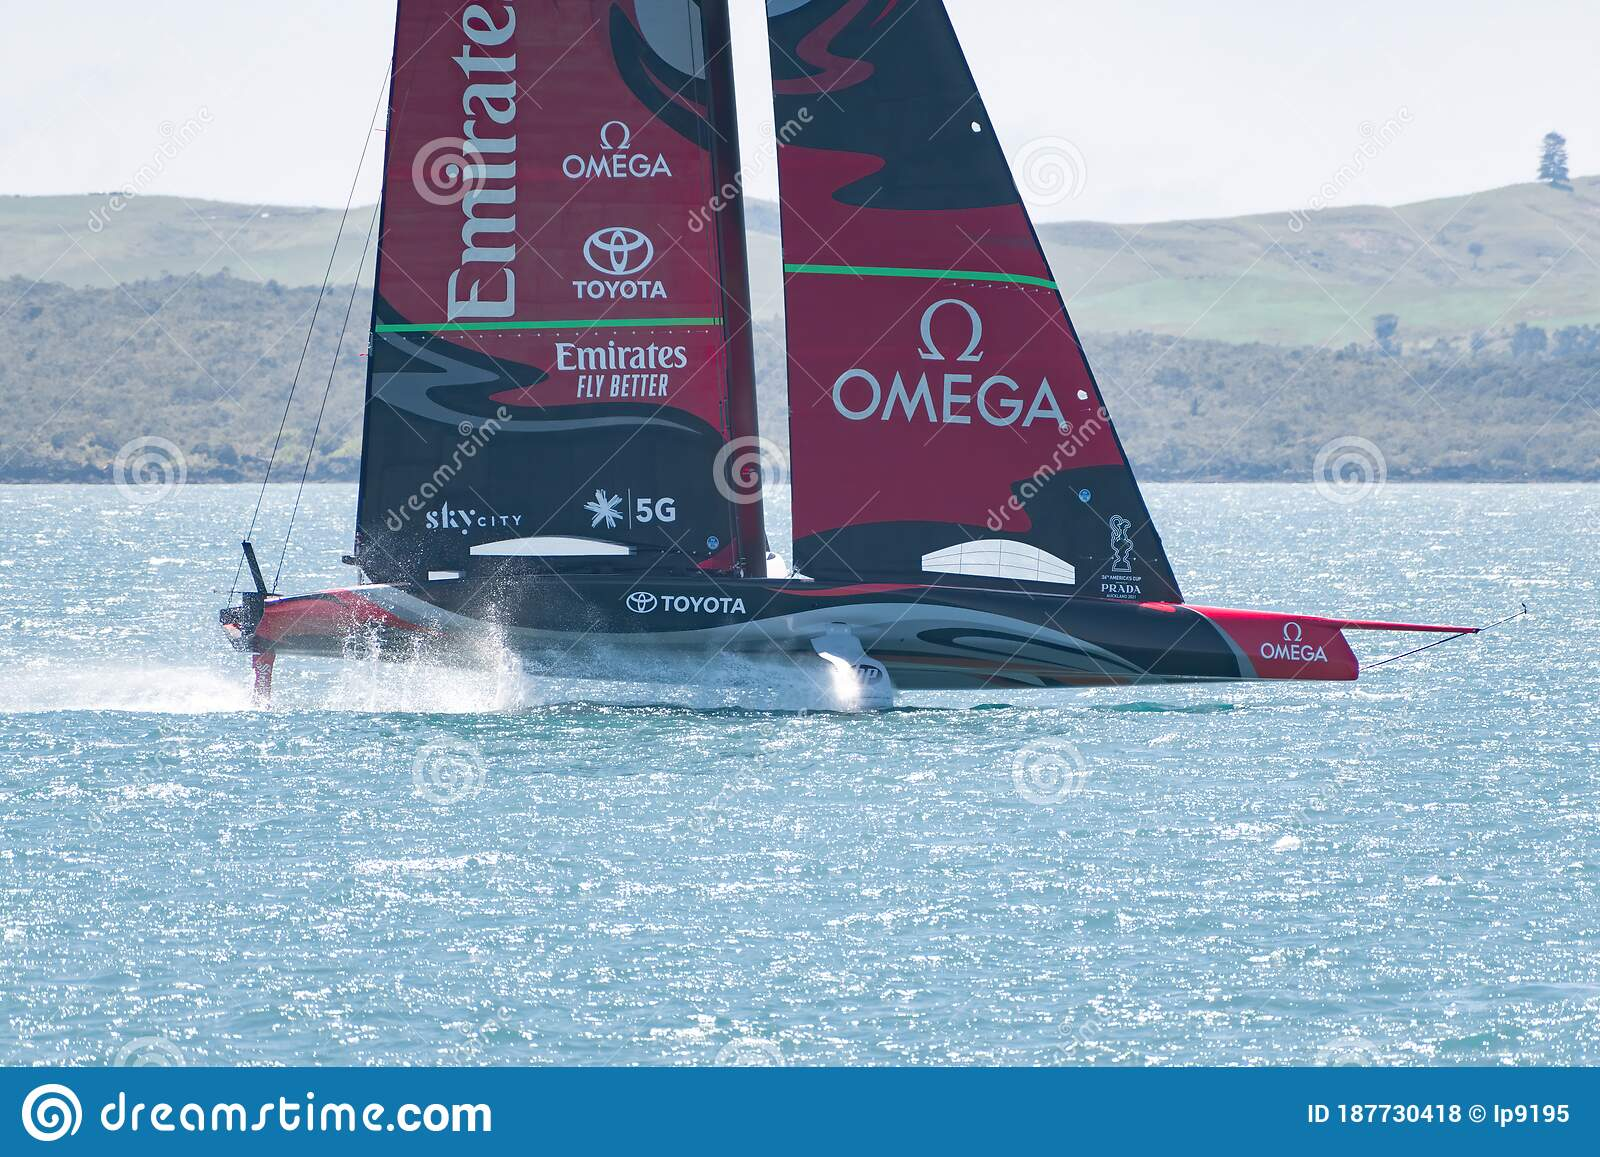 Team New Zealand Emirates Hydrofoil Sailboat Editorial Stock Photo Image Of Competition Sail 187730418